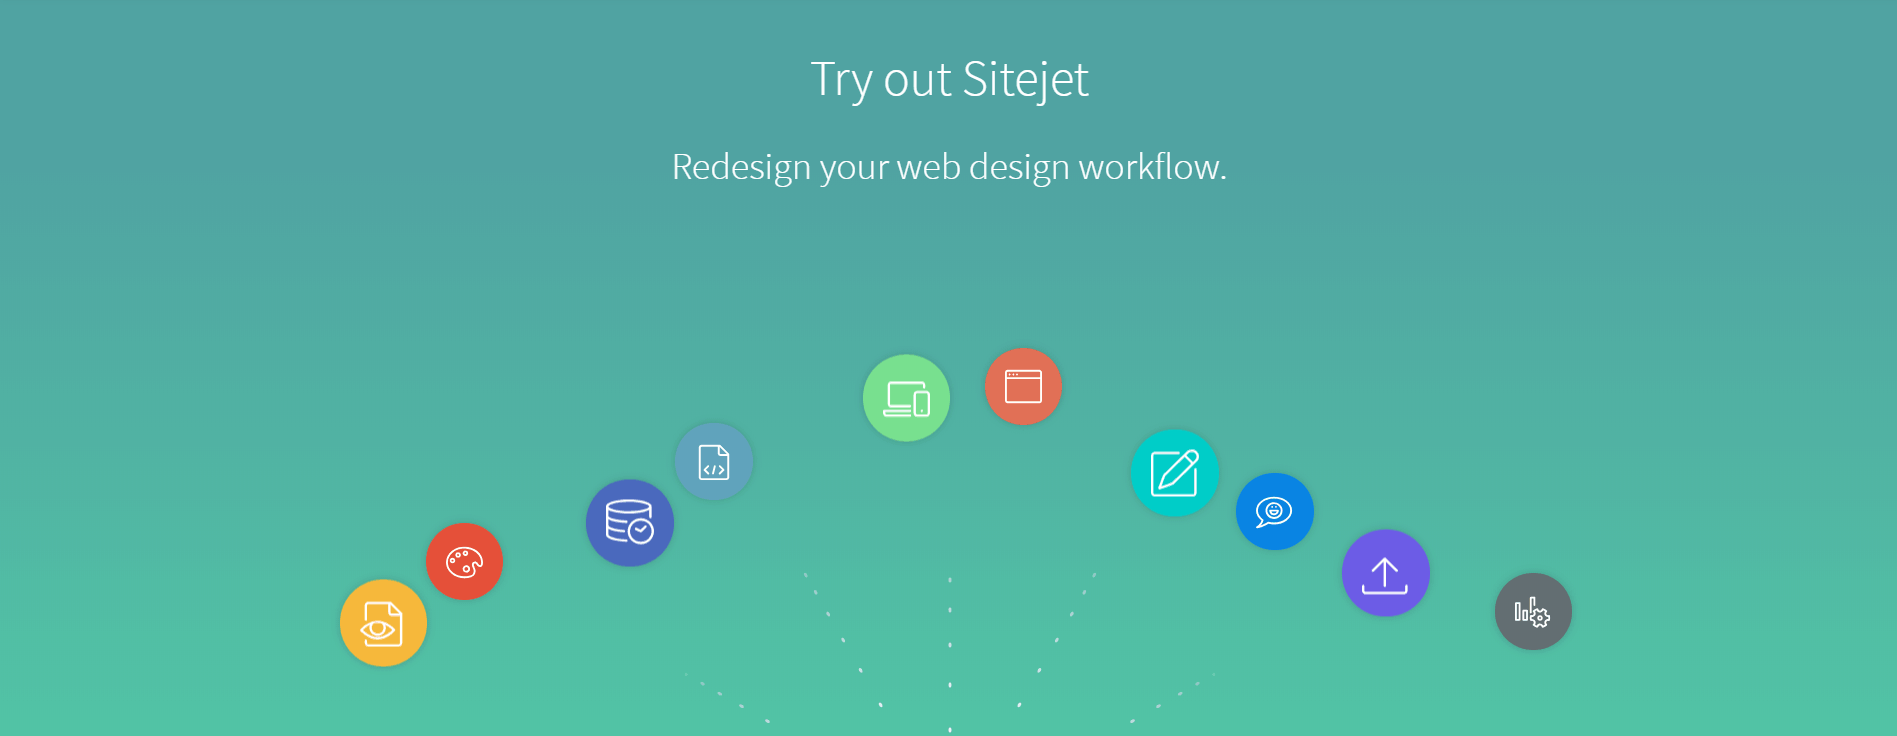 sitejet.io-features